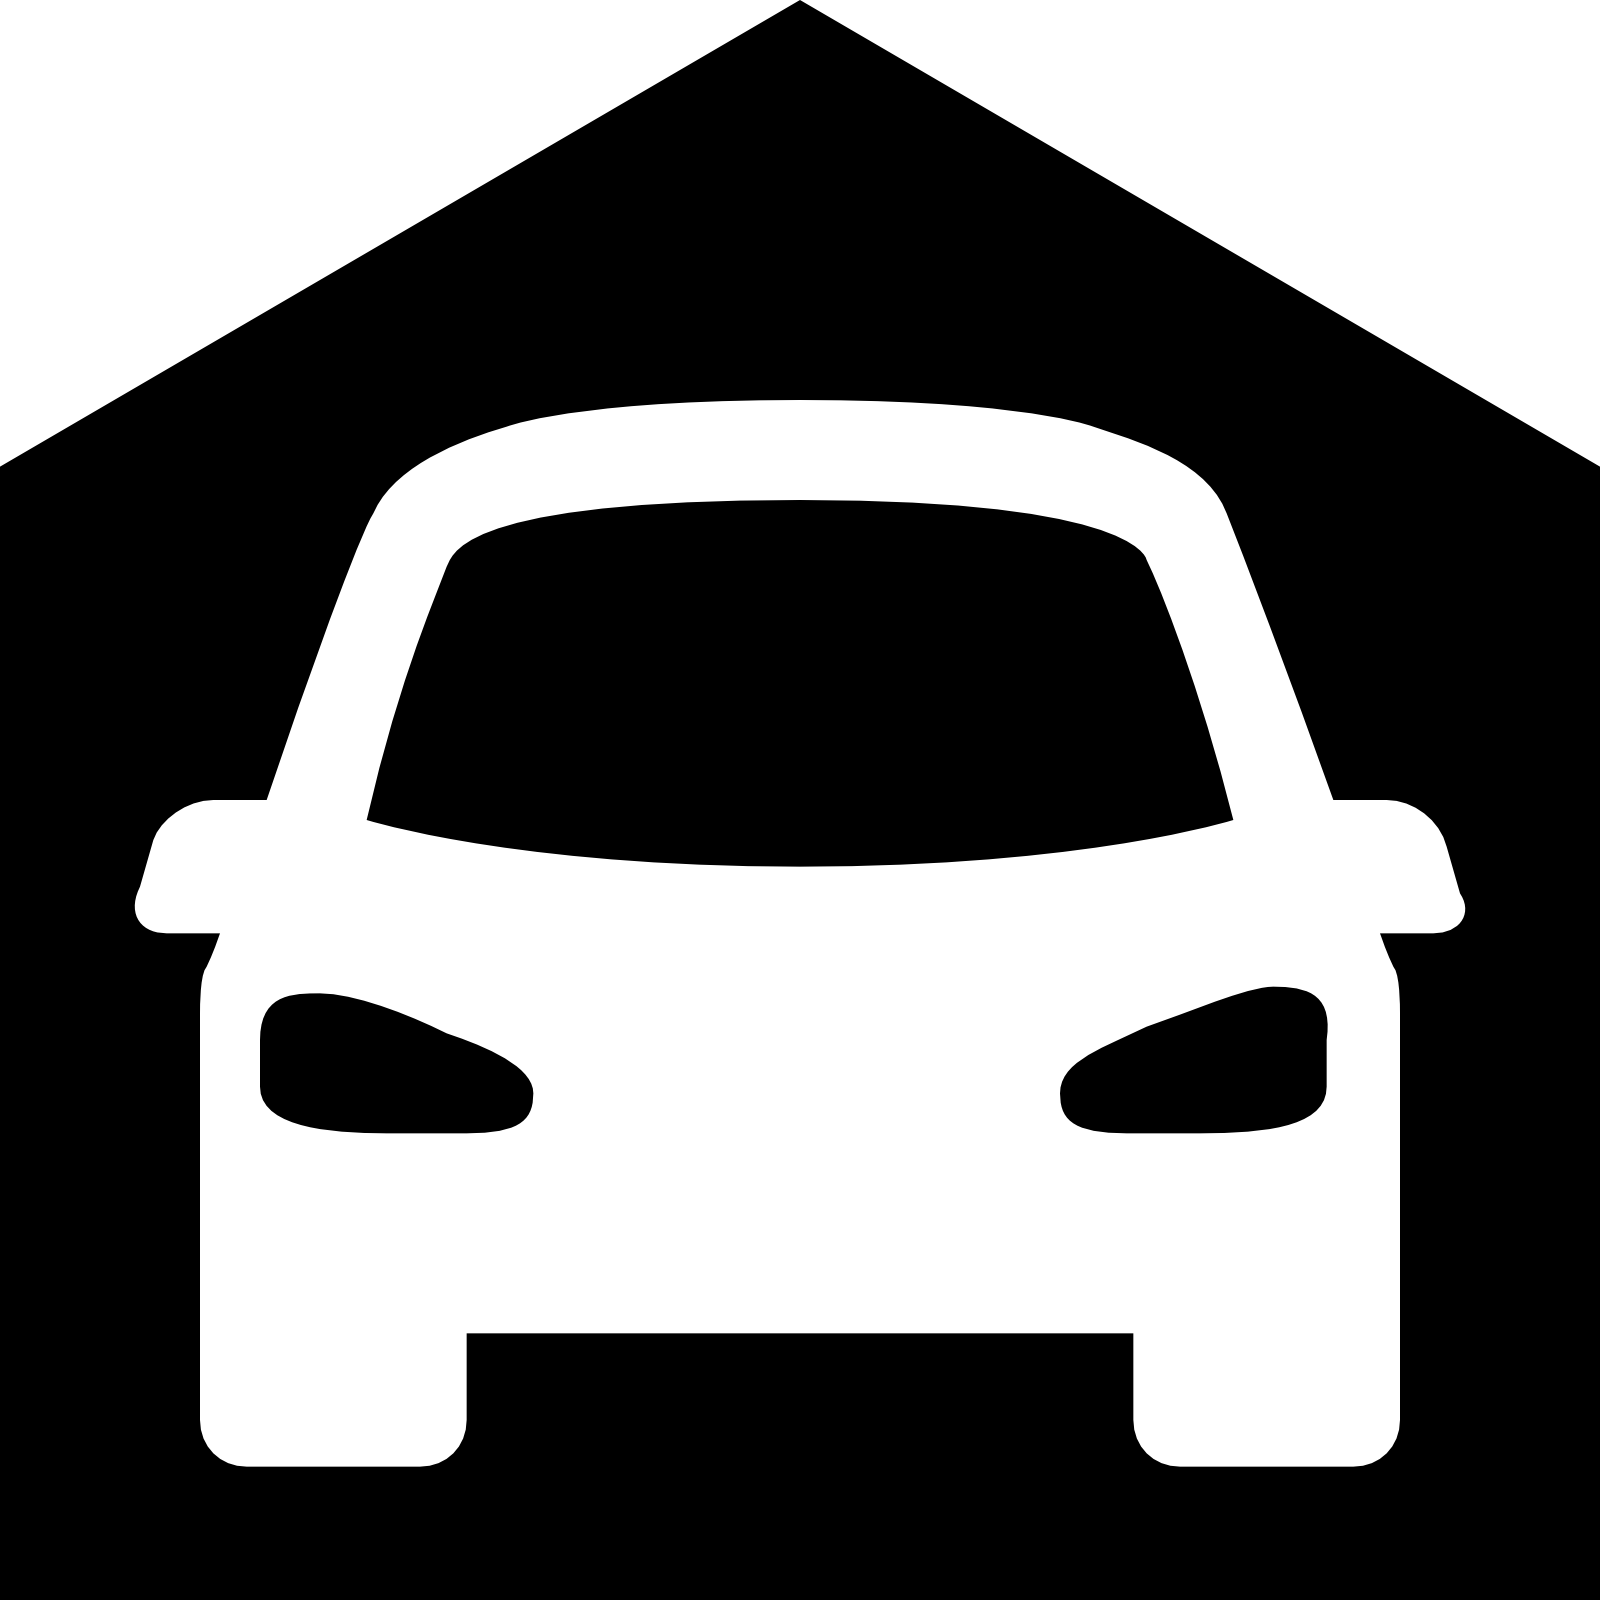 Inside clipart auto garage Free car a house of